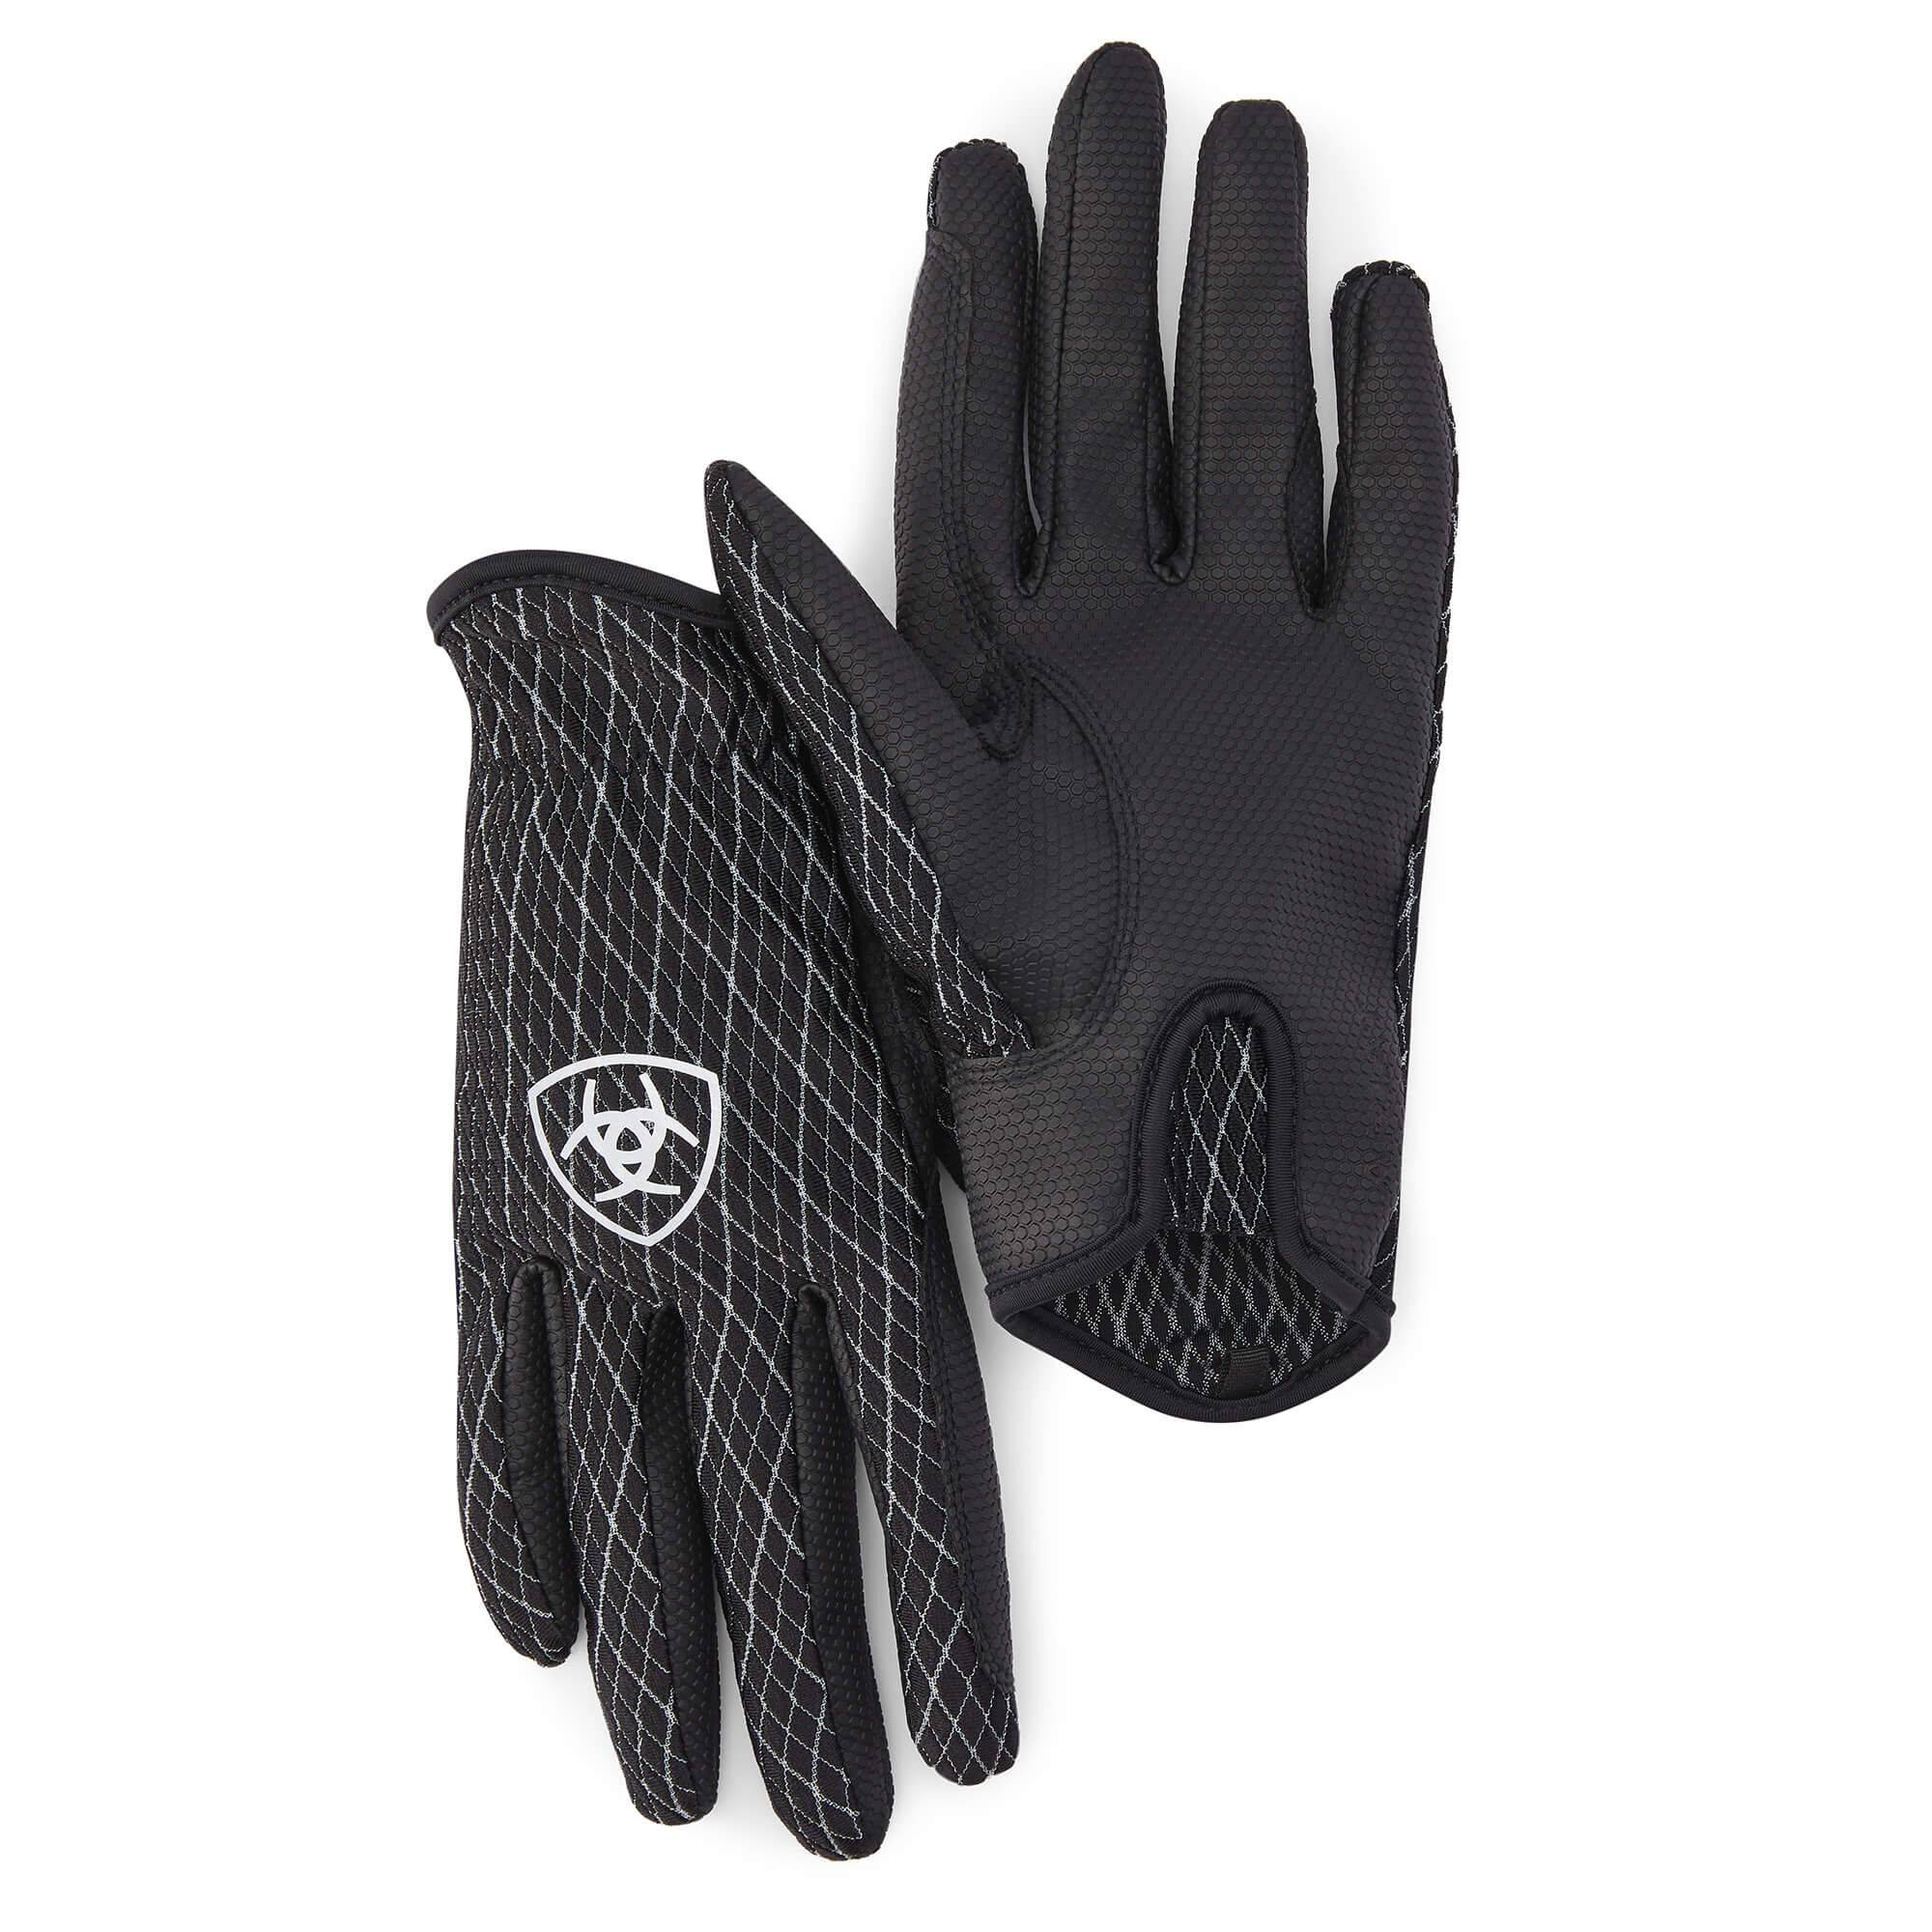 Ariat COOL Grip Gloves in Black White, Size 6.5 by Ariat